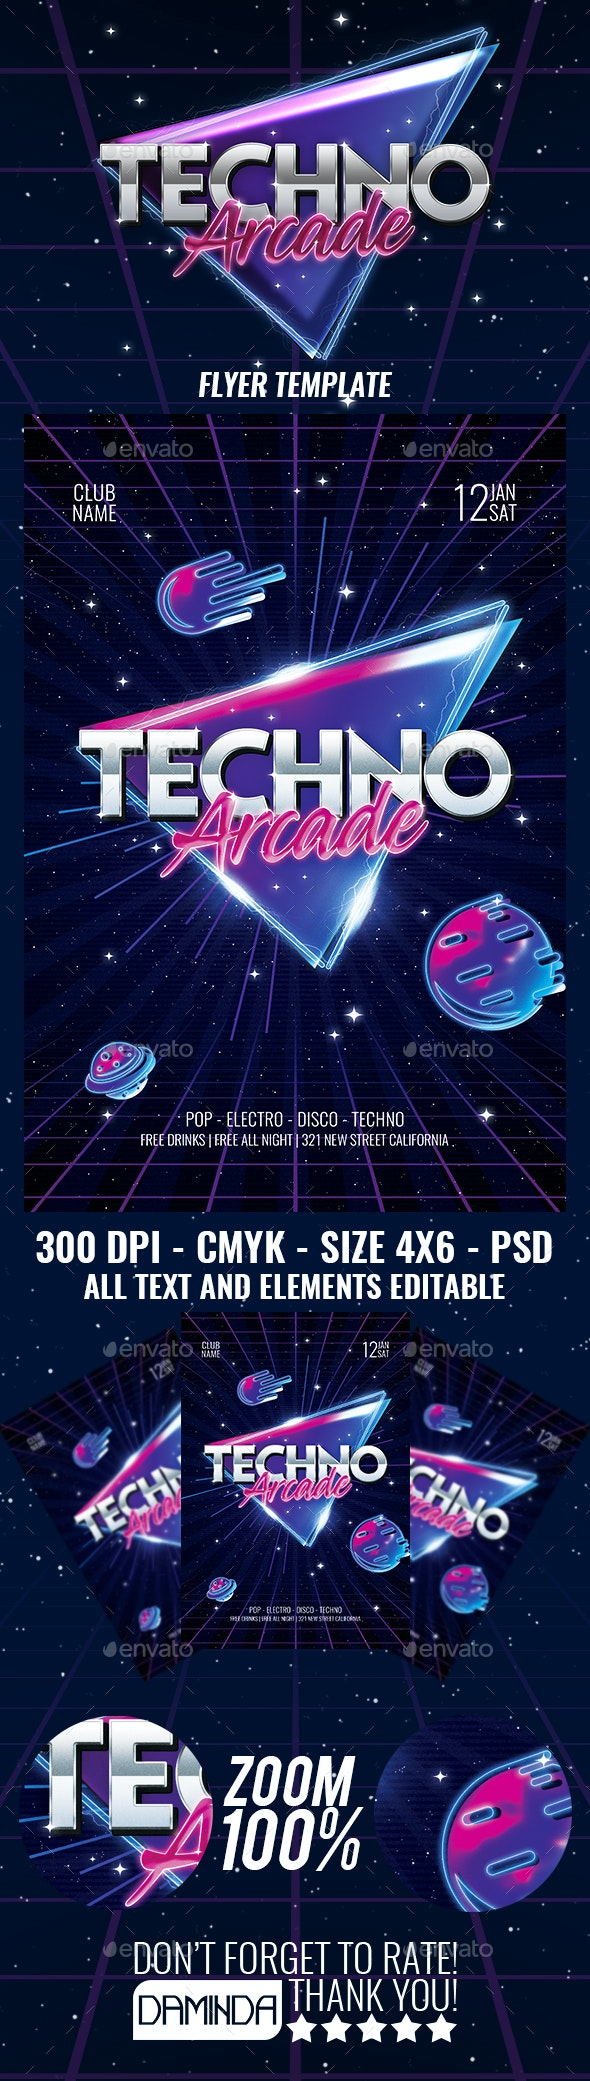 Techno Arcade New Flyer Template - Clubs & Parties Events